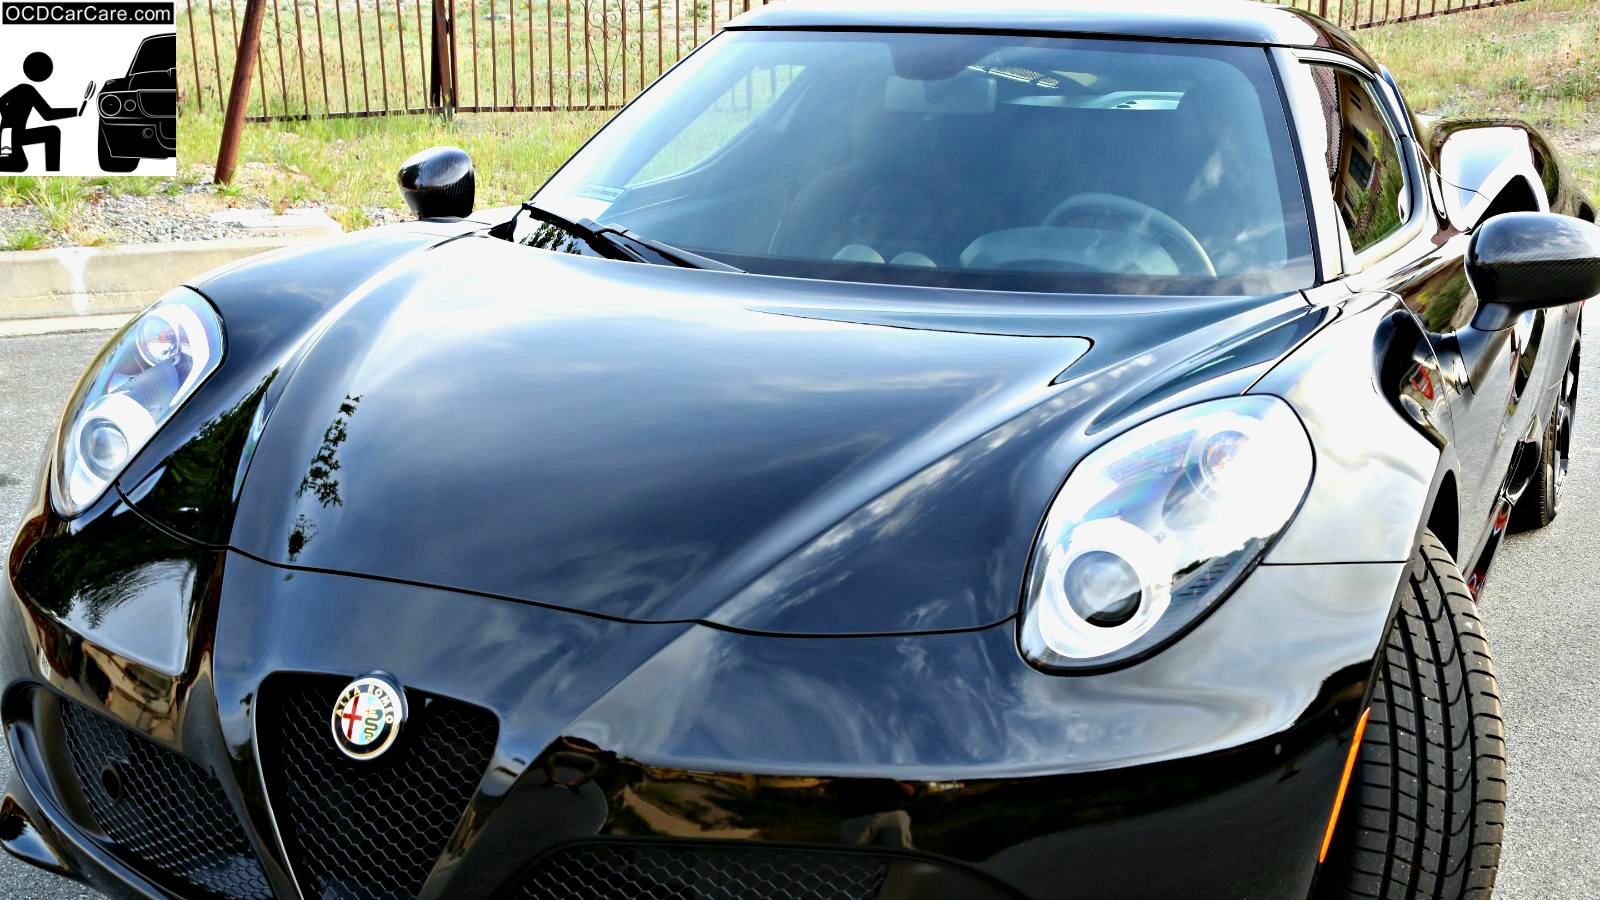 This Alfa Romeo 4C is the epitome of gloss & reflectivity with a nano glass coating.